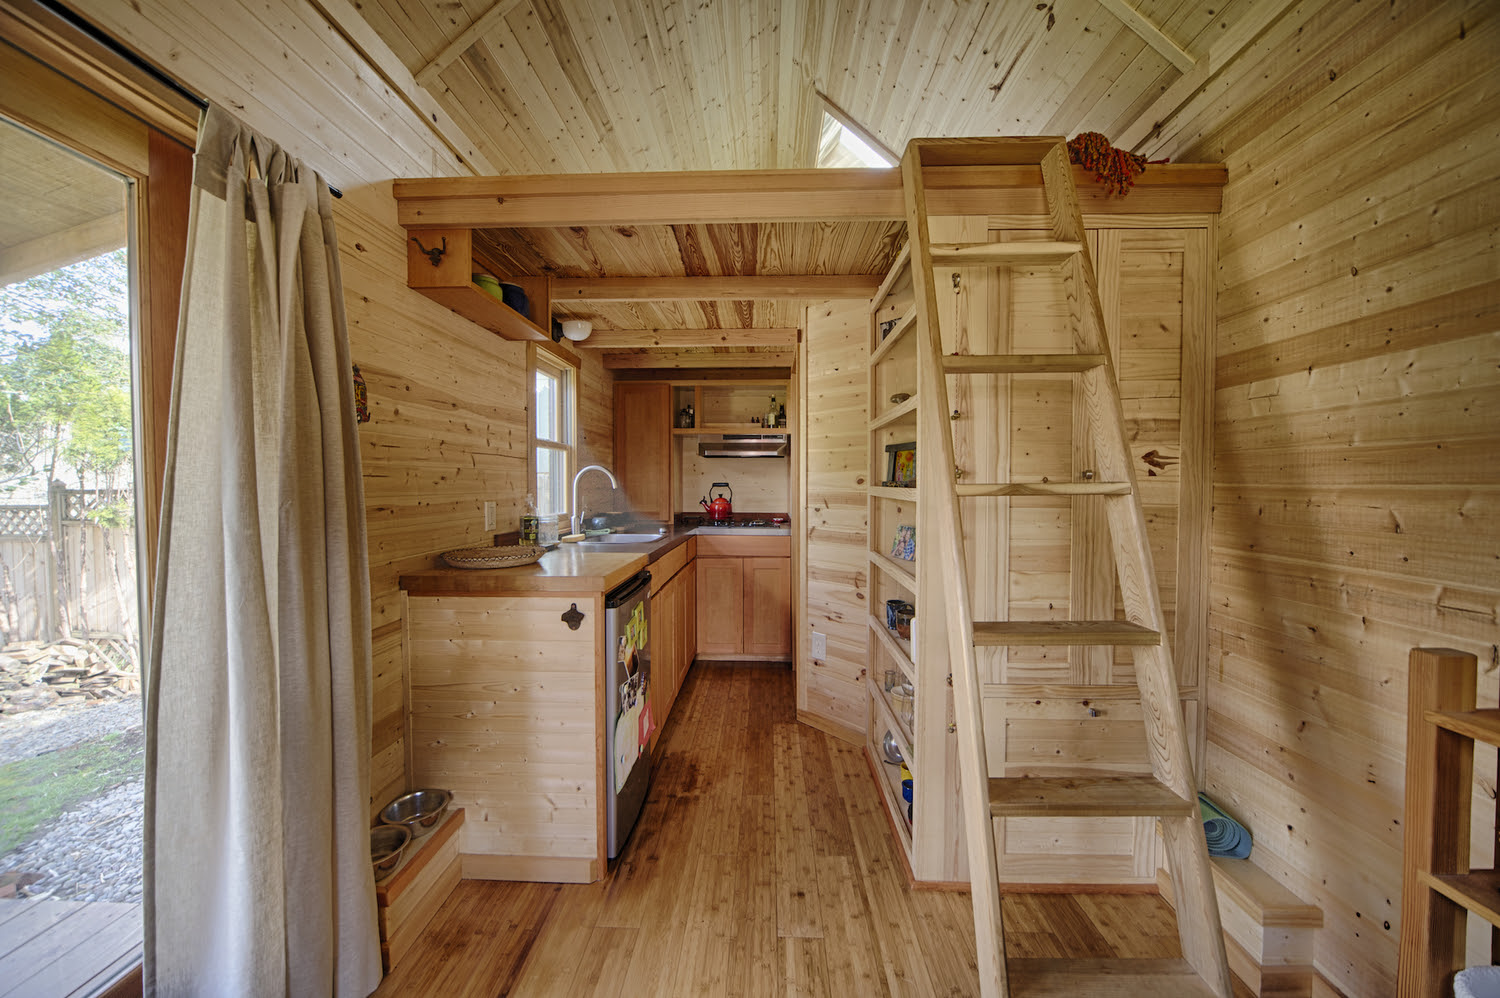 Inside Gina's Tiny House -Photo by Christopher Tack